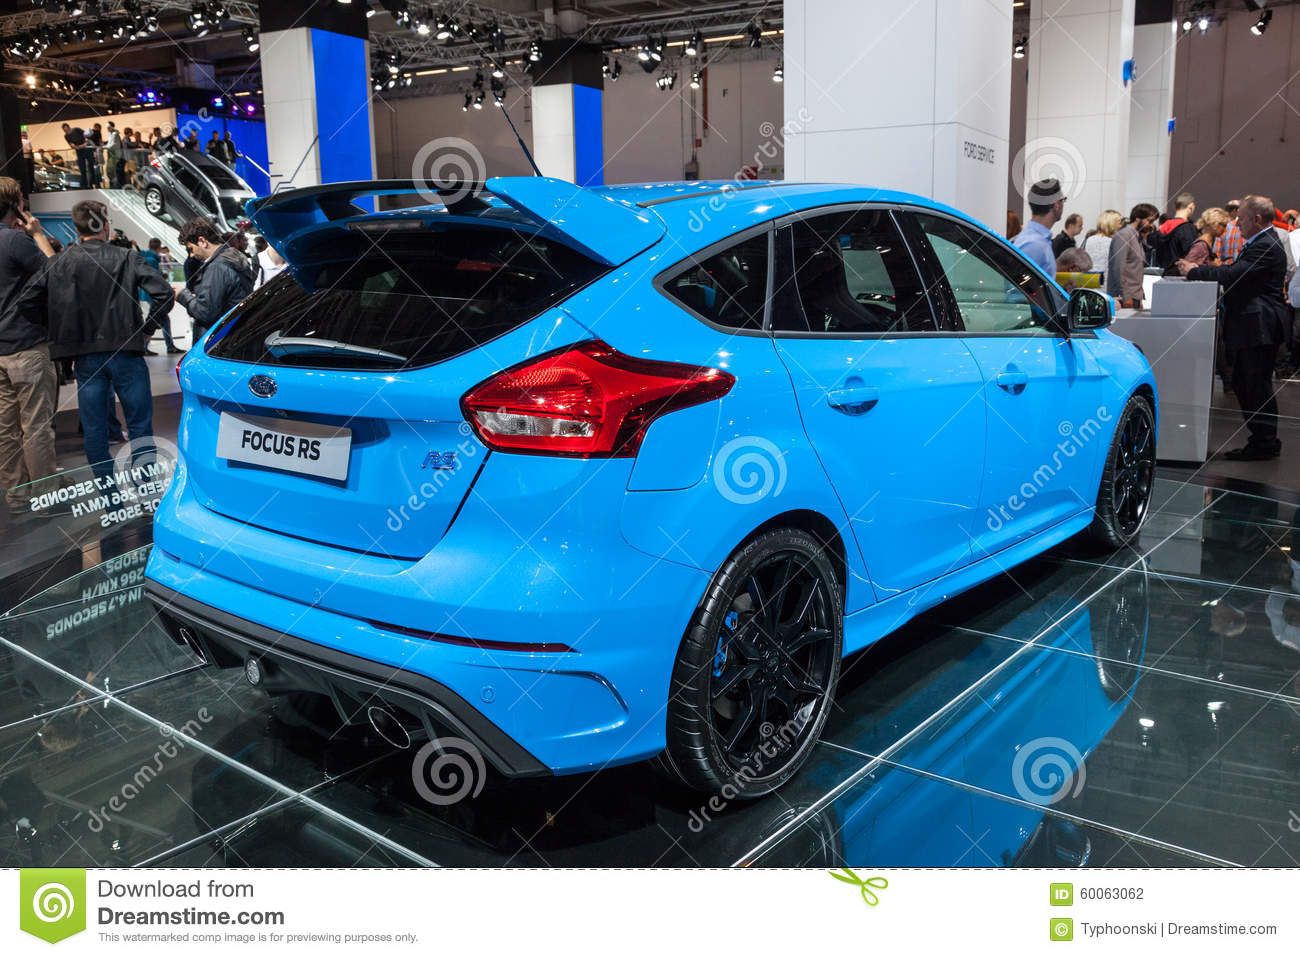 neuer ford focus rs am iaa 2015 redaktionelles stockfotografie bild 60063062. Black Bedroom Furniture Sets. Home Design Ideas